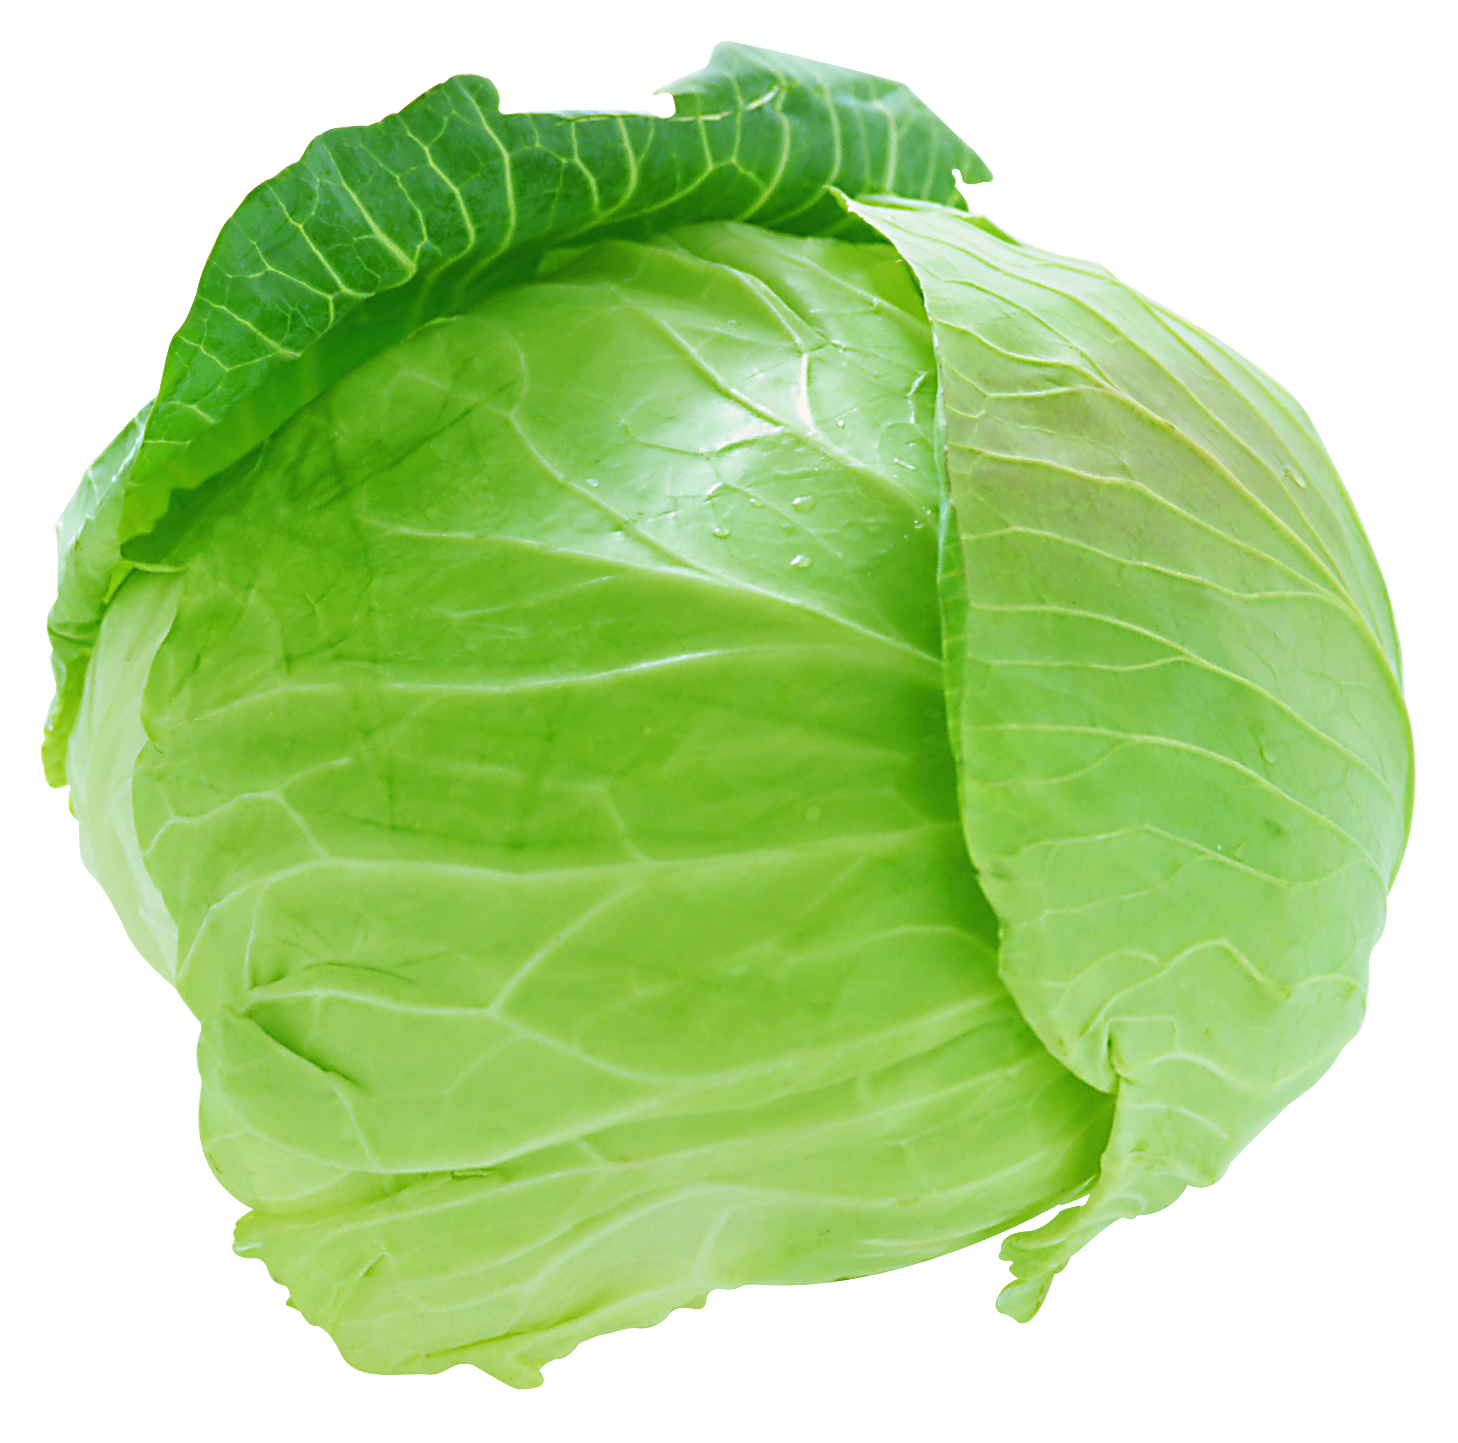 Lettuce purple pencil and. Clipart vegetables cabbage